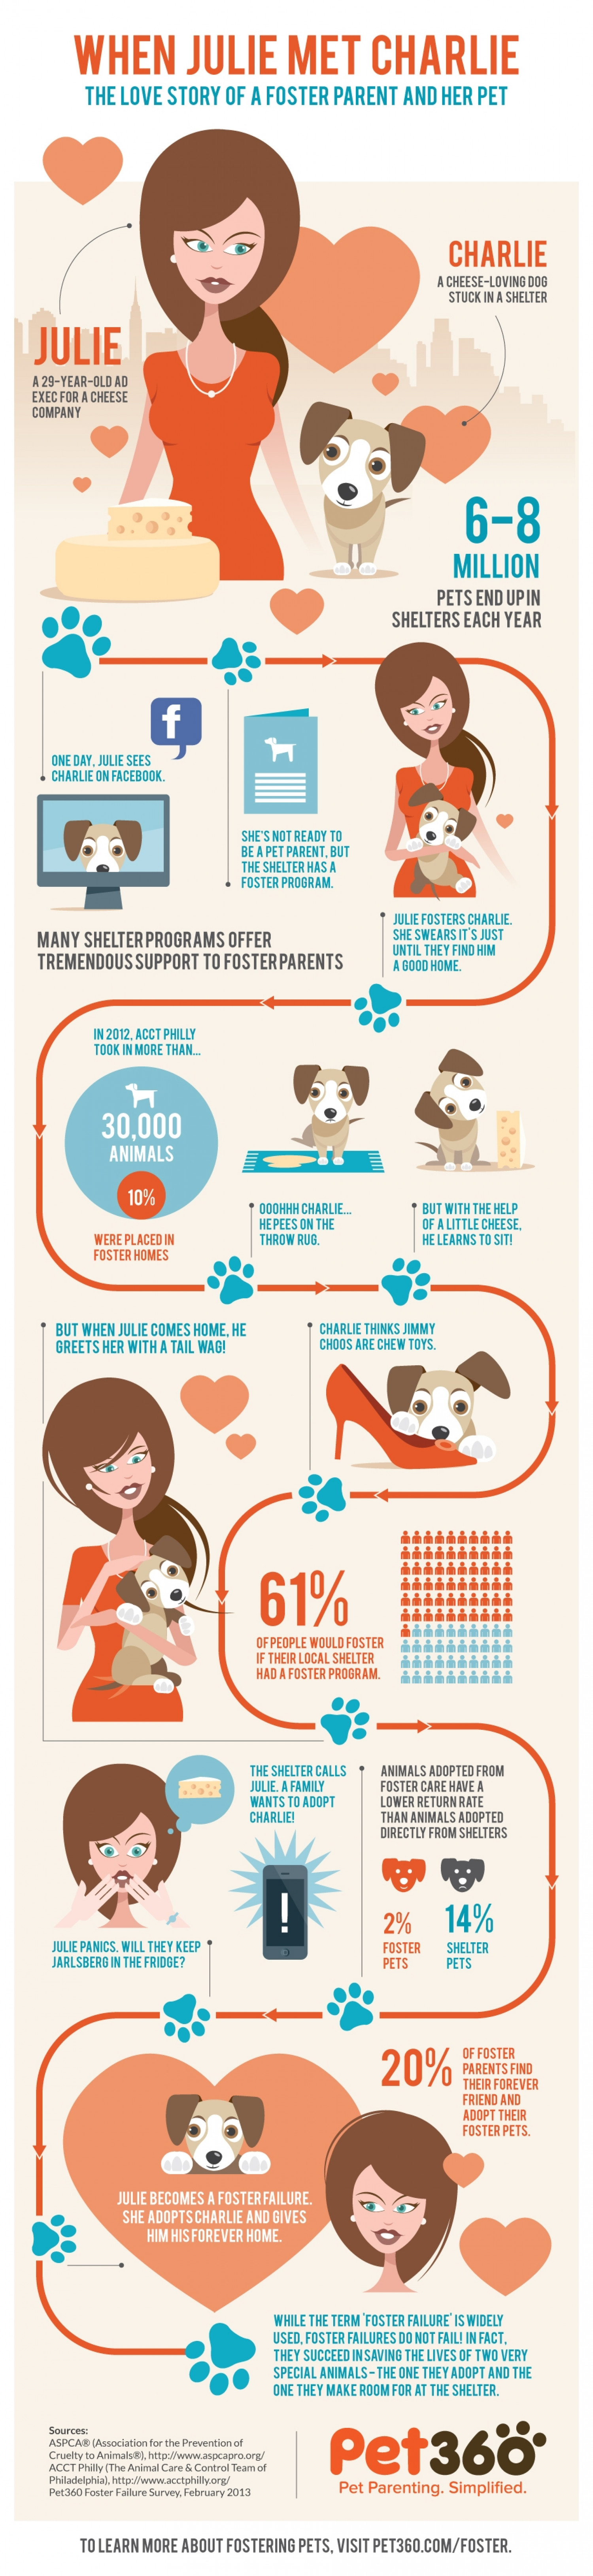 When Julie Met Charlie: The Love Story of a Foster Parent and Her Pet Infographic